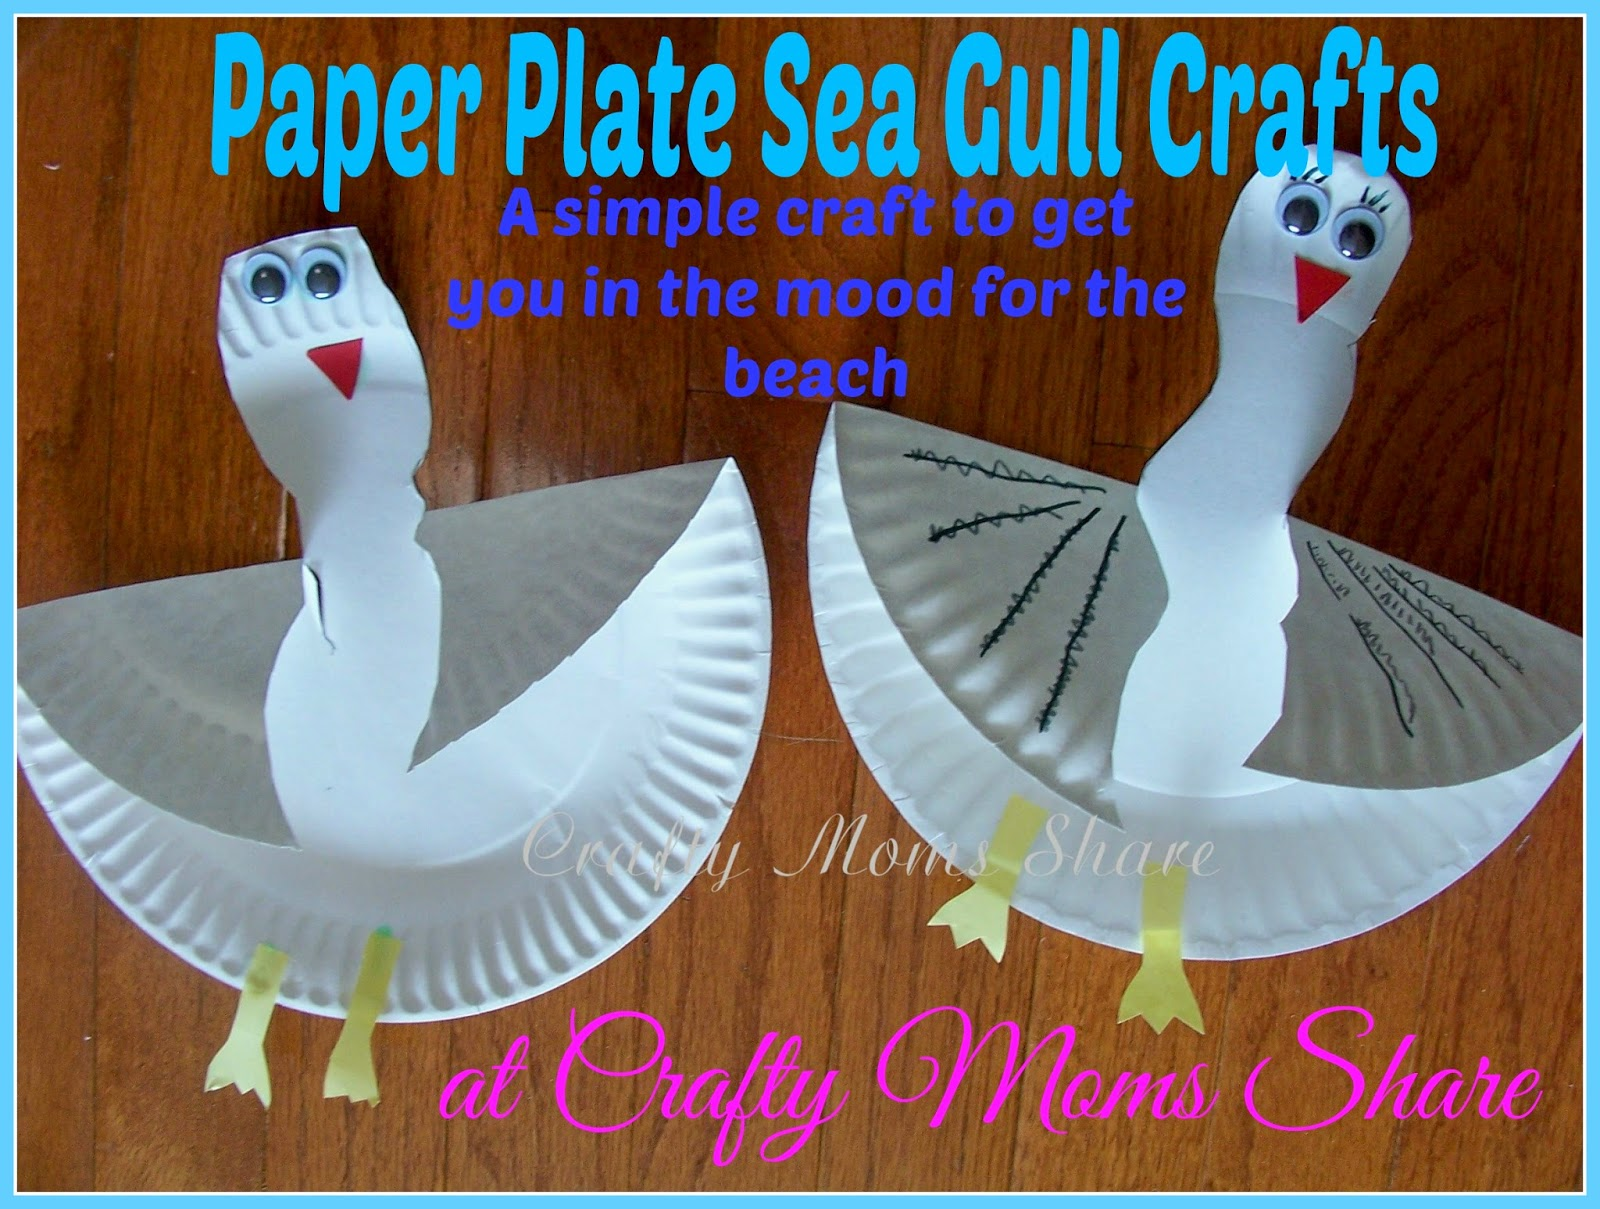 An Easy Paper Plate Sea Gull Craft & Crafty Moms Share: An Easy Paper Plate Sea Gull Craft